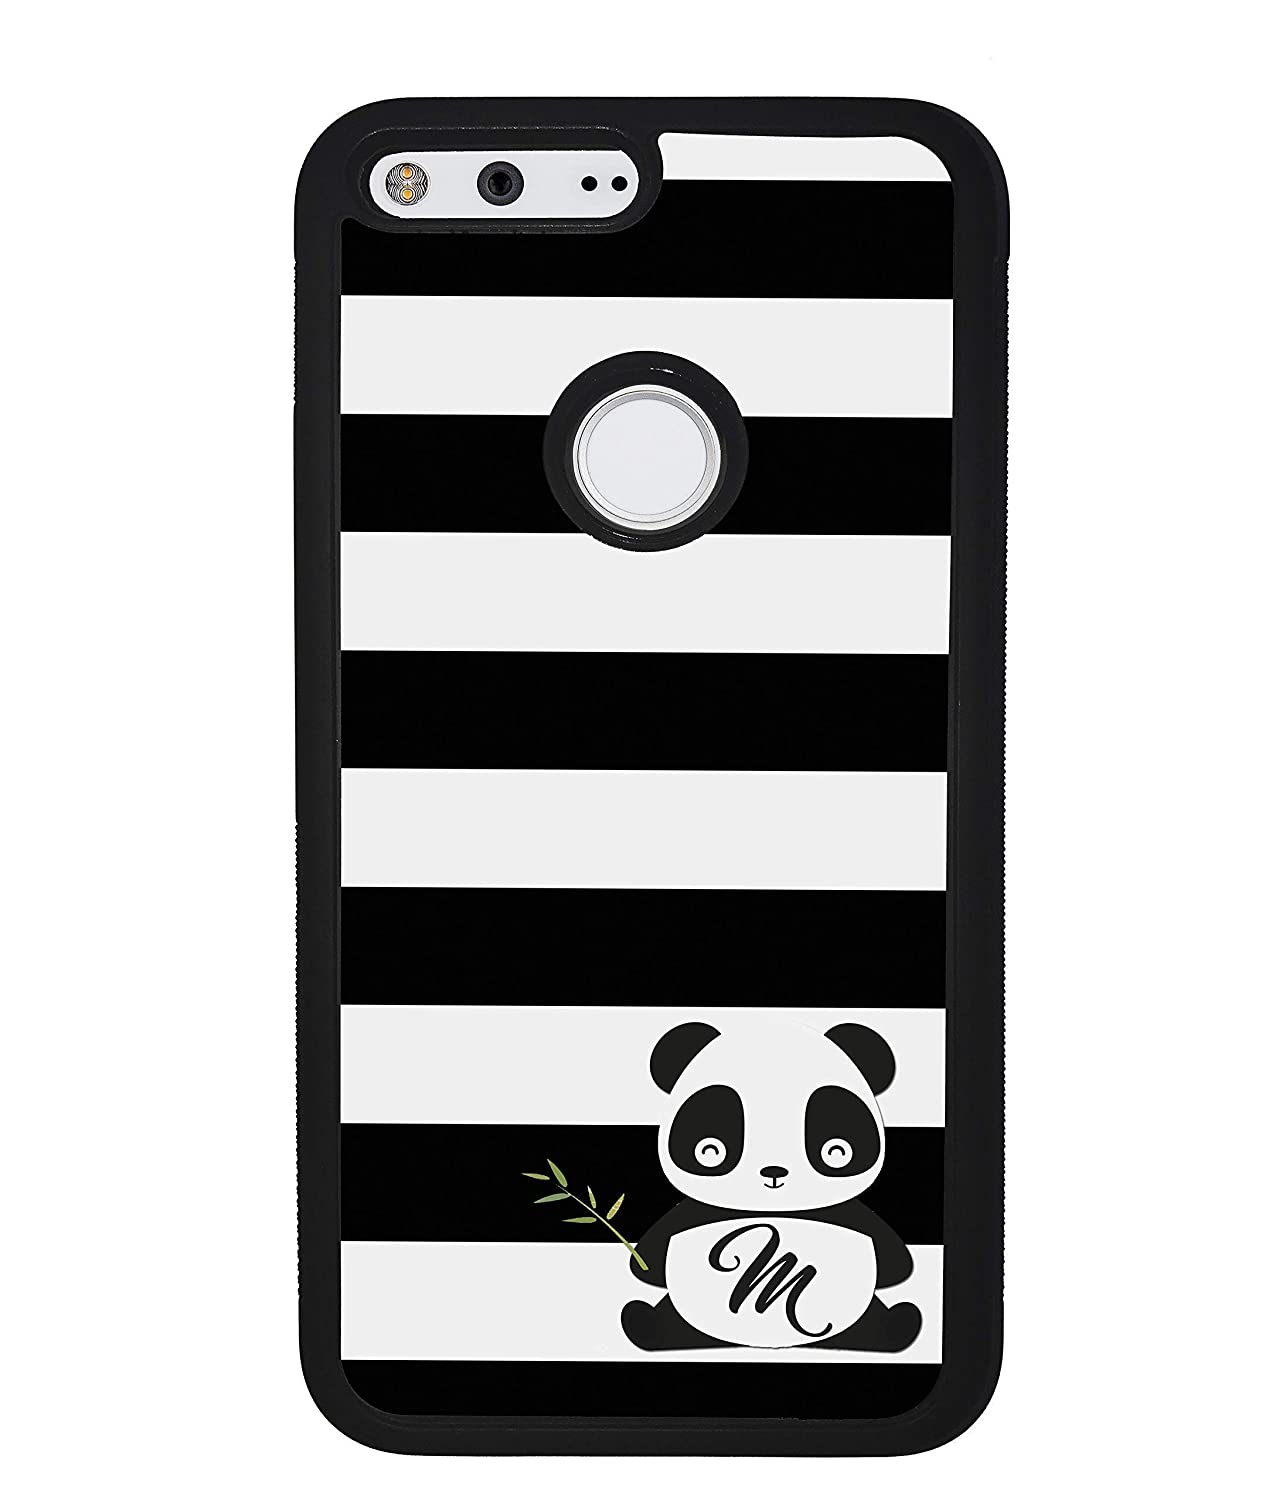 3a Google Pixel 4a Google Pixel 2 2XL 3a XL 4 XL Google Pixel 3 Google Pixel 3 XL Black and White Bars Panda Personalized Google Pixel Black Rubber Phone Case Compatible With Google Pixel 5